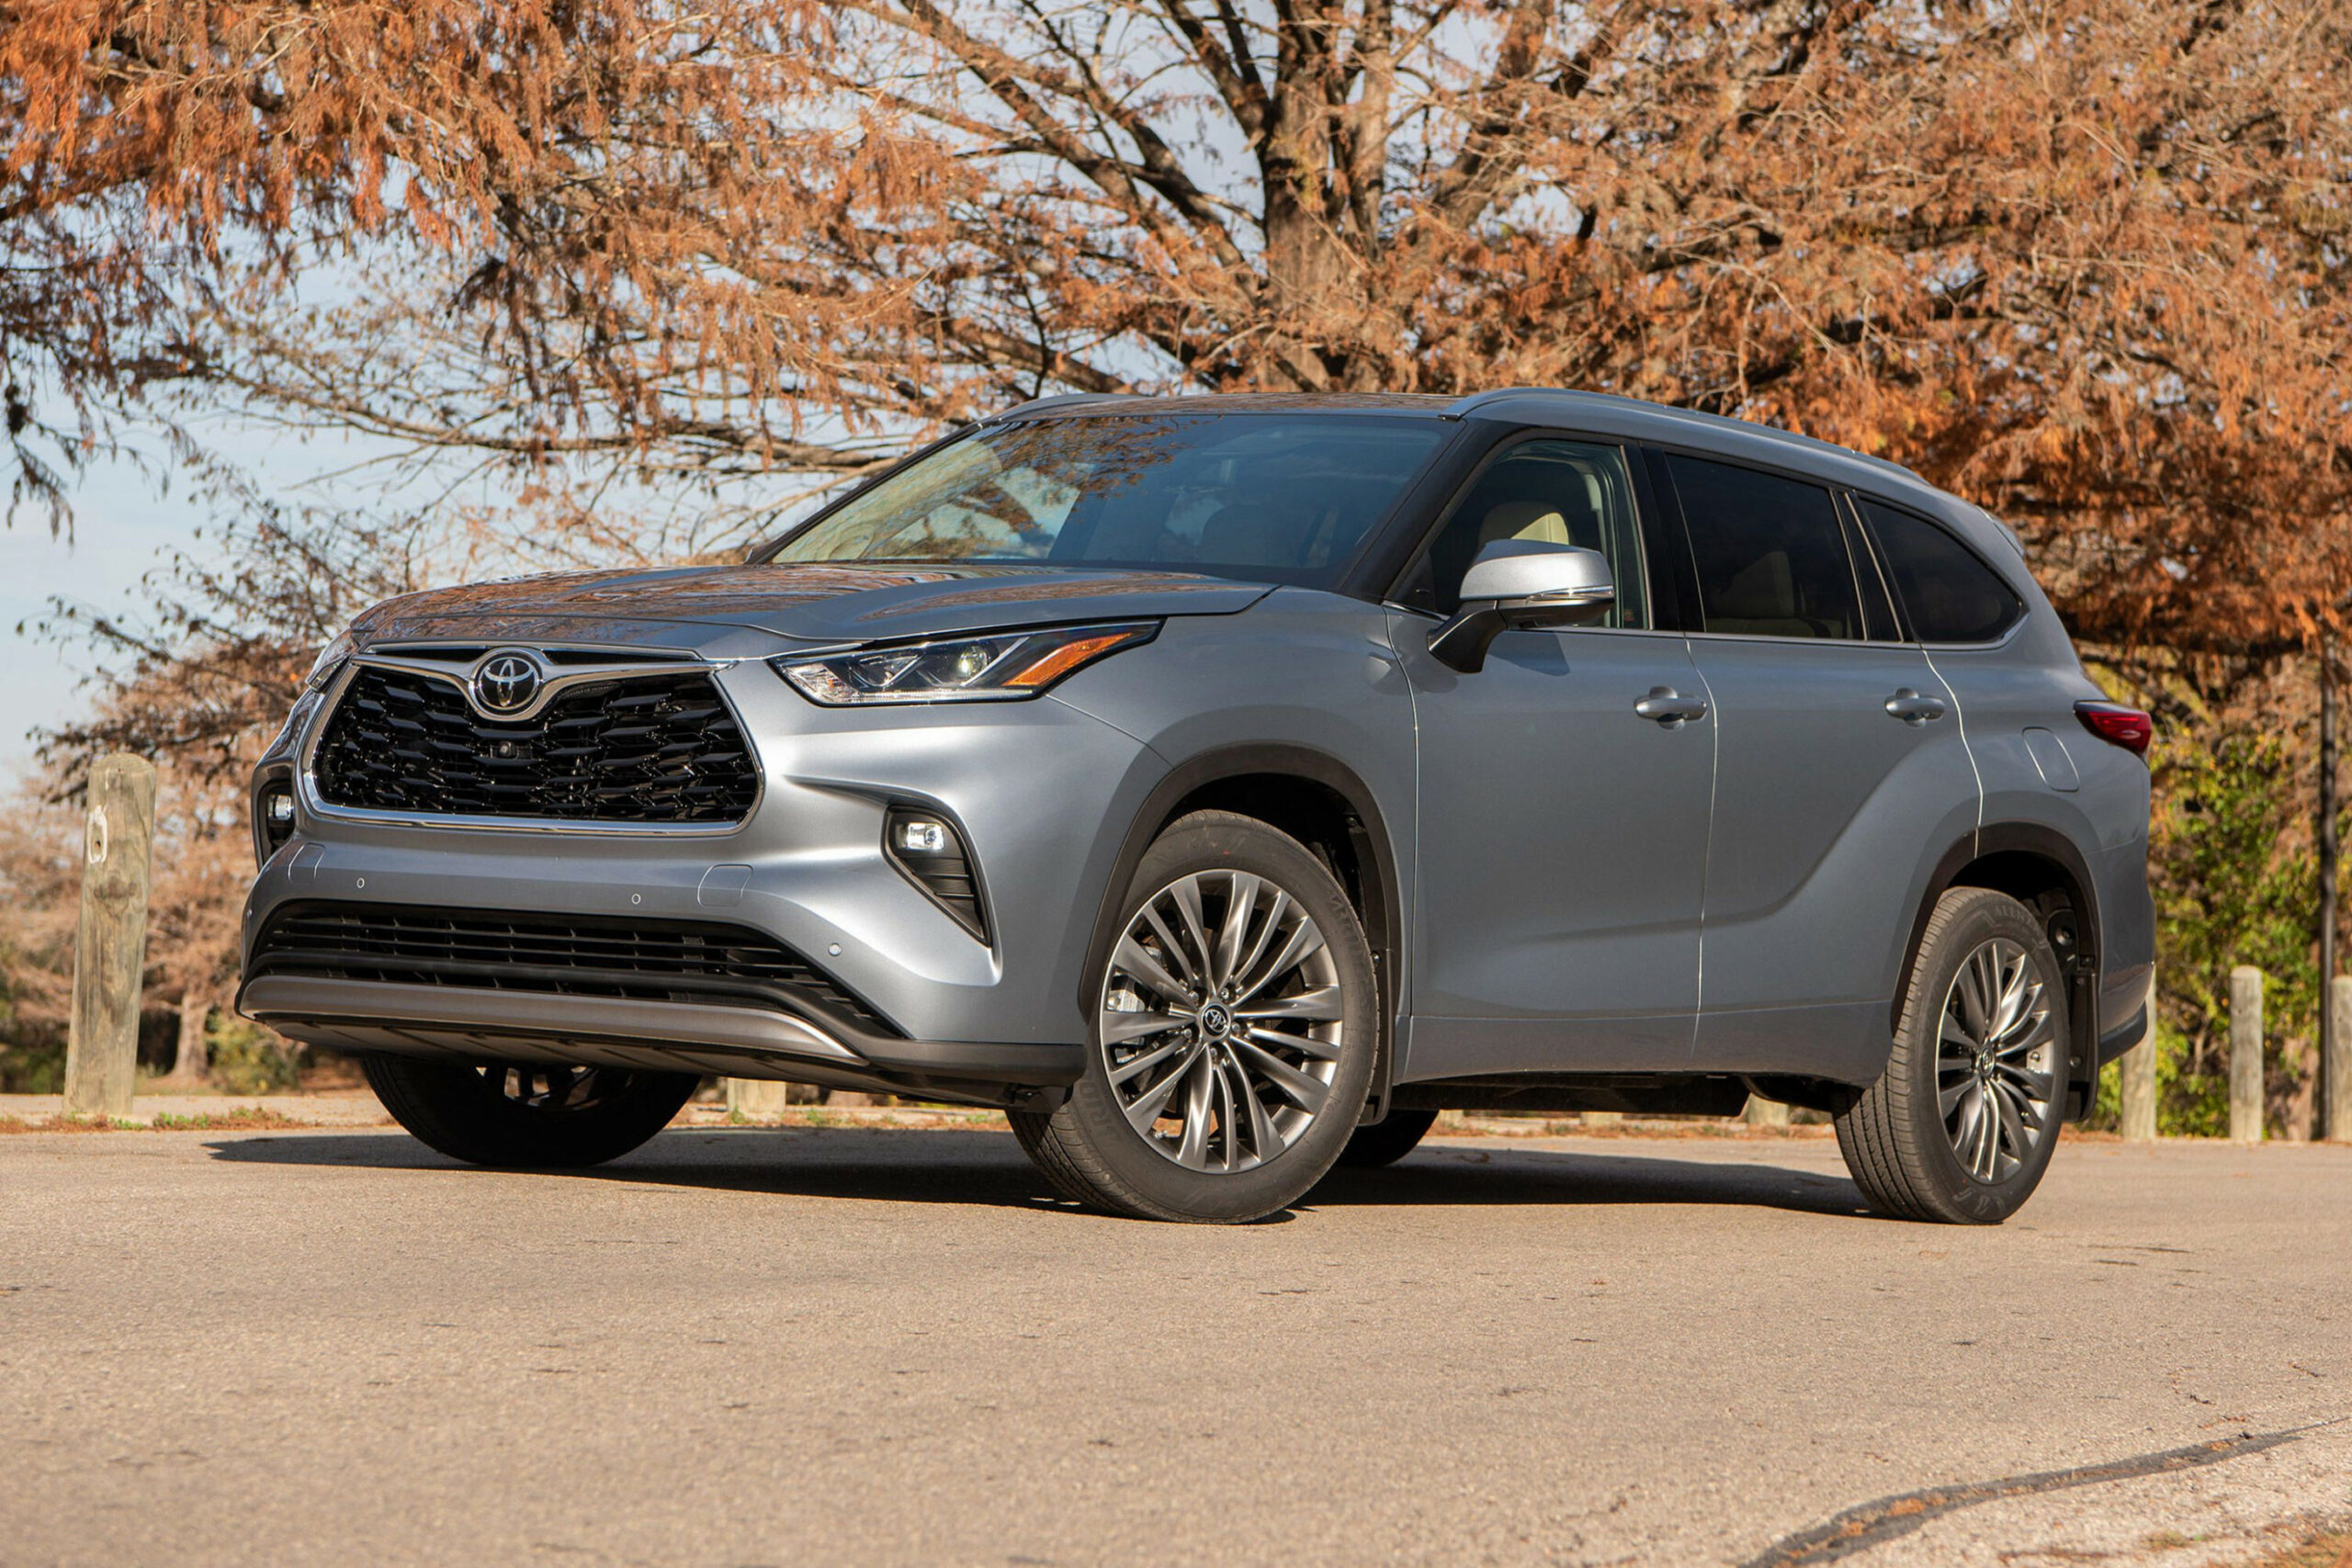 8 Toyota Highlander first drive review: It raises the bar, but ..